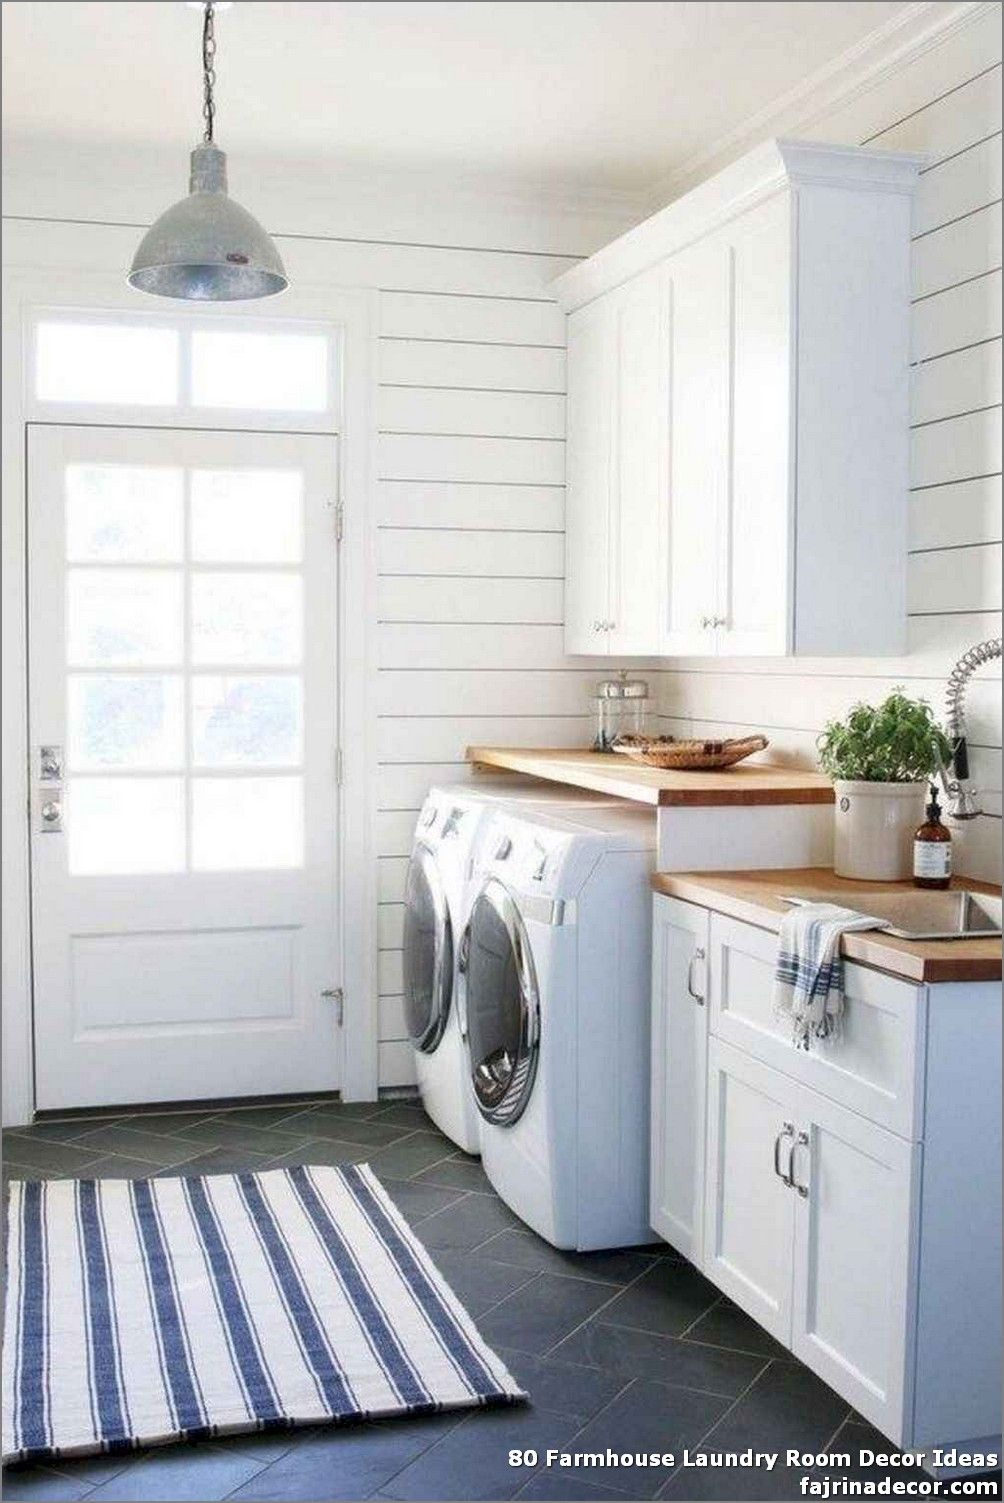 Pin On House Inspiration